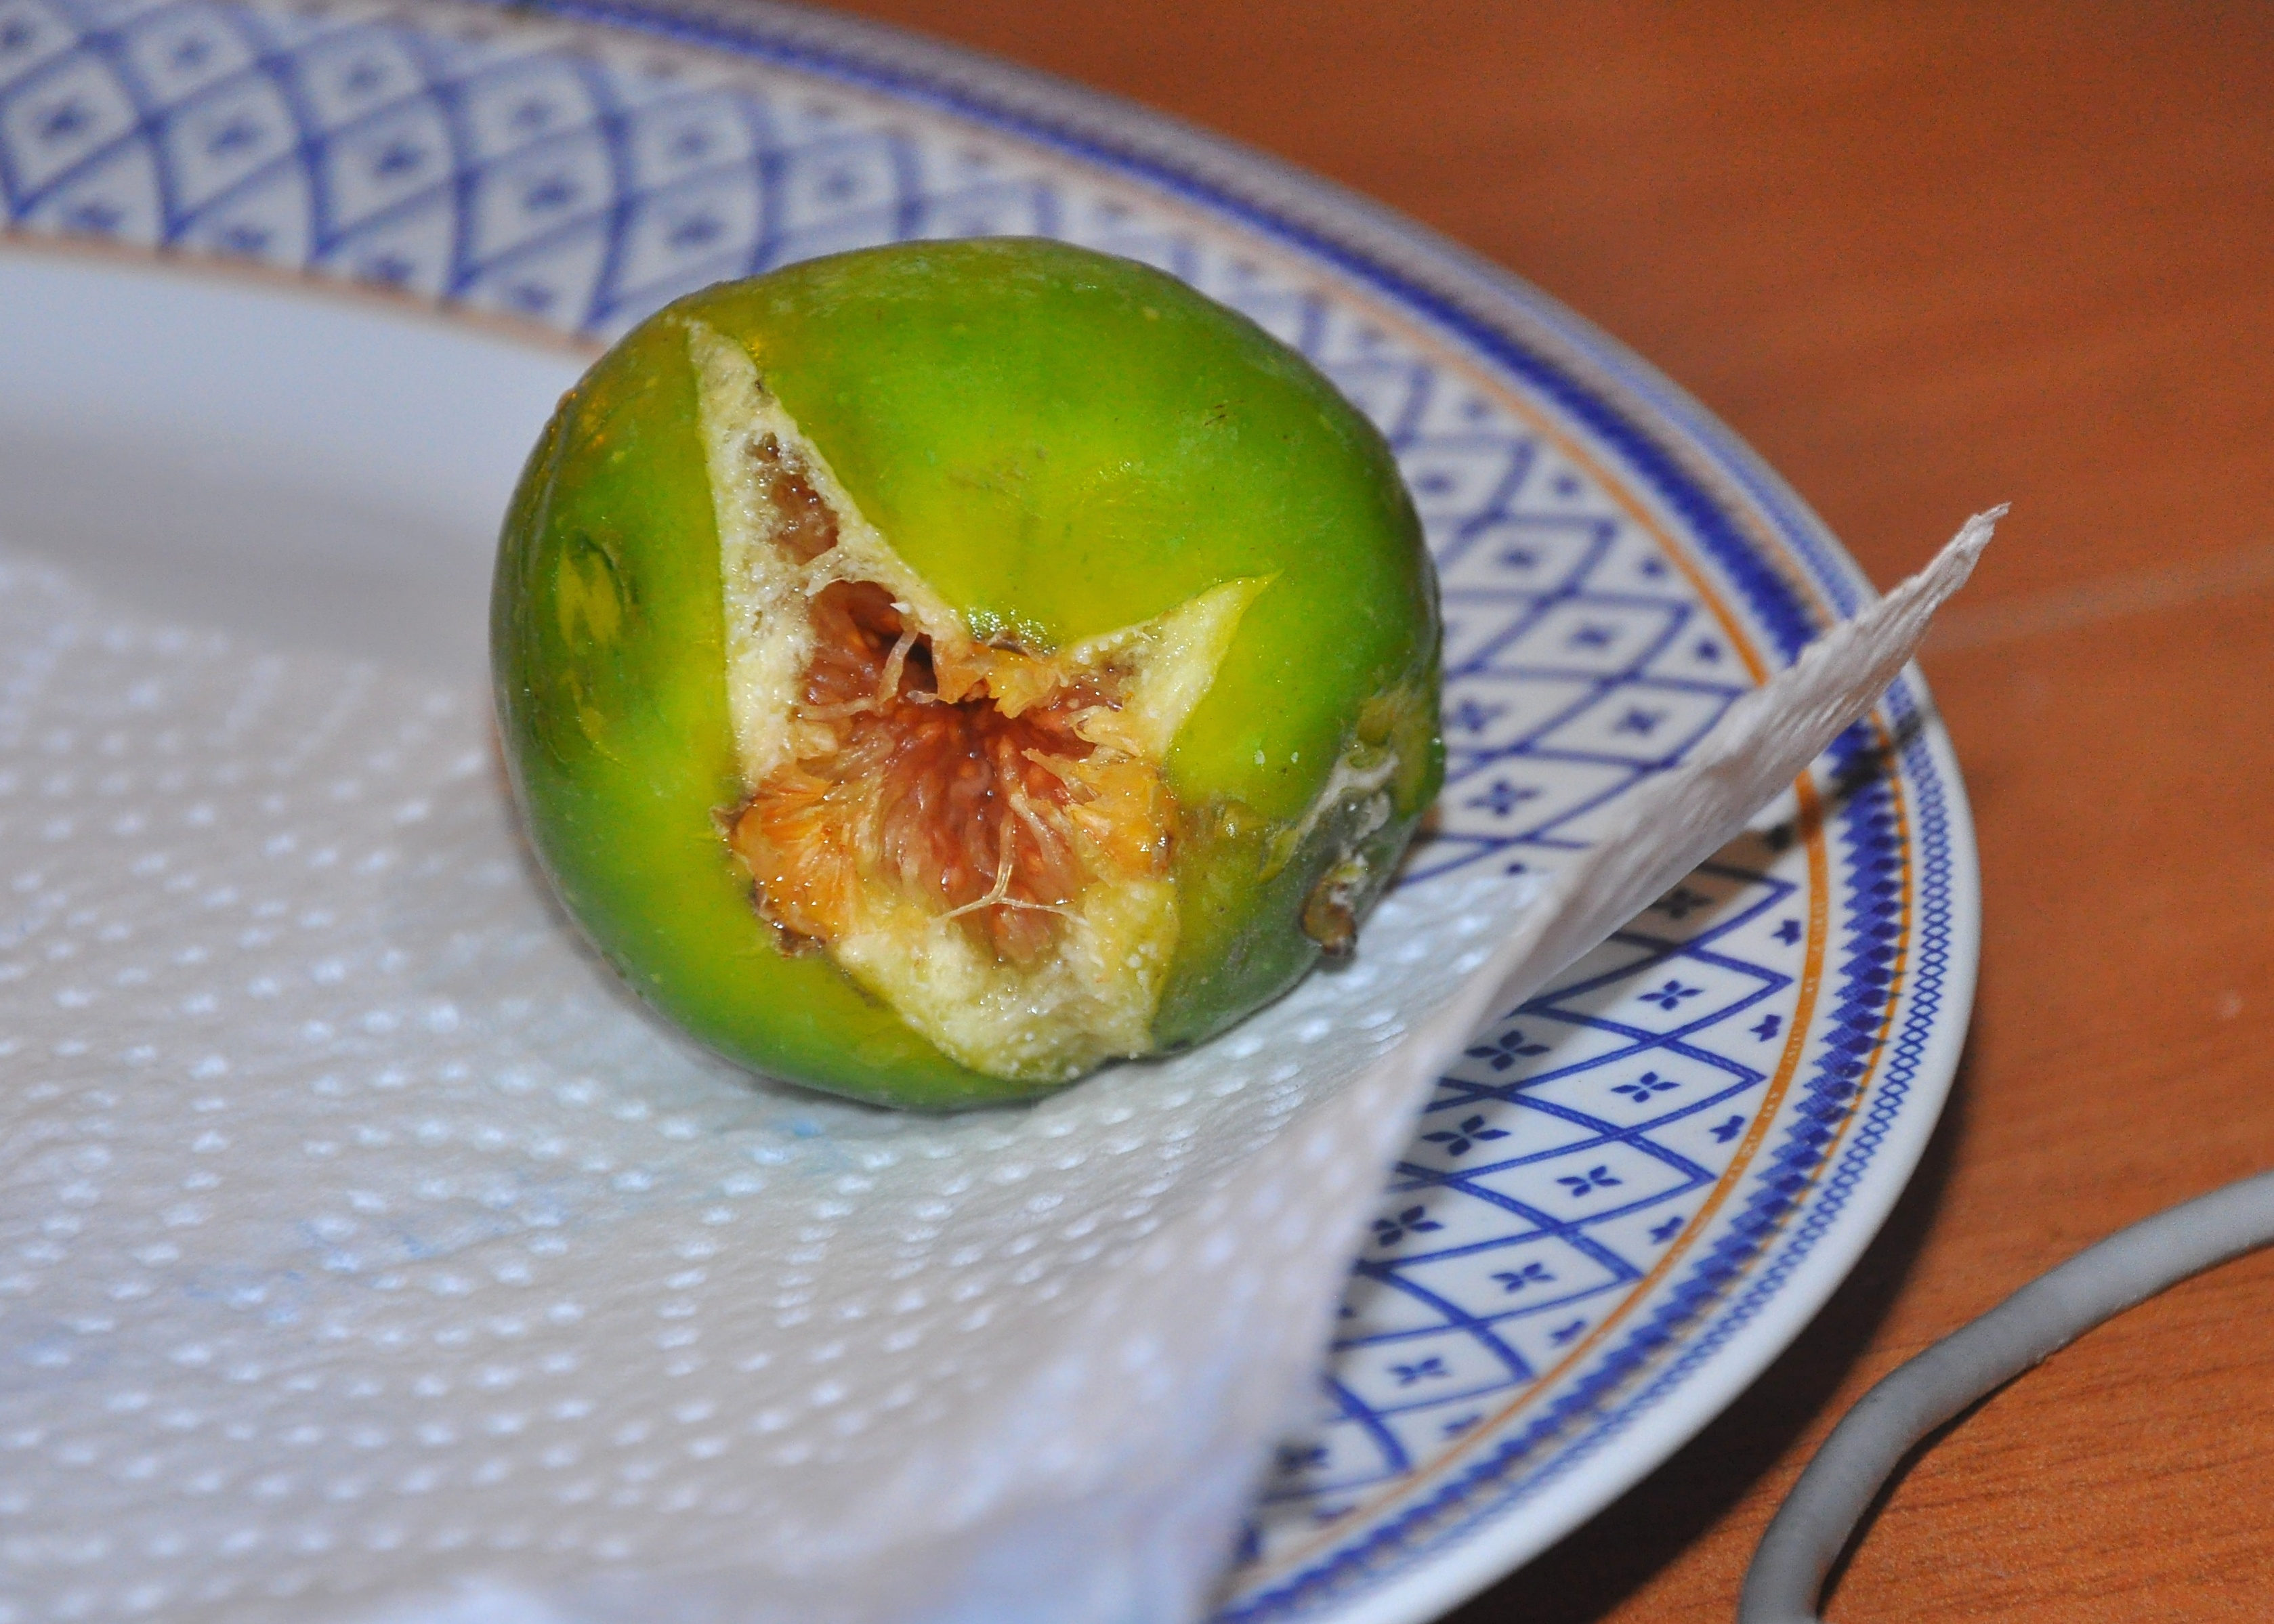 An Italian fig, one type of seasonal summer produce in Italy